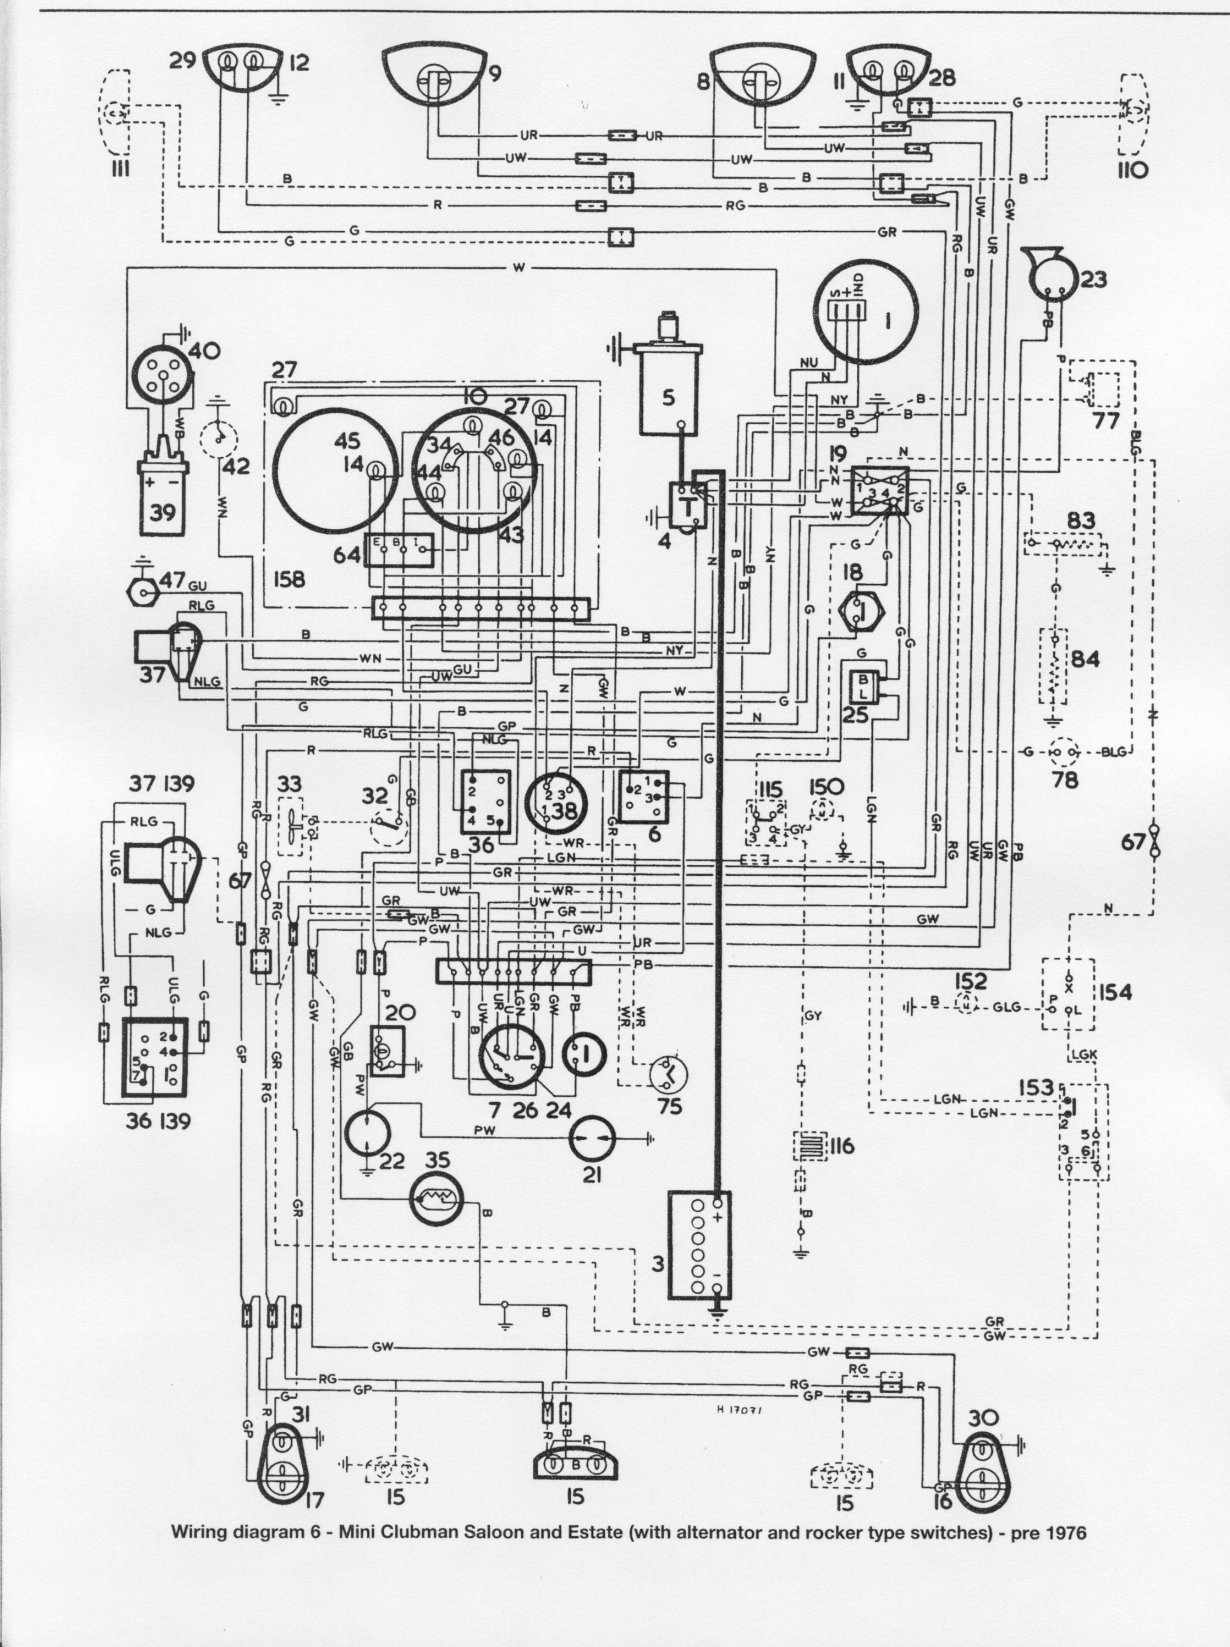 amphicar wiring diagram with Austin Mini Wiring Diagram on Daewoo Lanos Electrical Wiring Diagram further Snatch Block Diagrams moreover Lifier Wiring Diagram Lexus Is250 as well Spark Plug Wiring Diagram Symbol Toyota Wiring Diagram Vehicle Wiring Schematic Symbols Blonton   Spark Plug Wiring Diagram Symbol Motorcycle Wiring Diagram Symbols Wiring besides Austin Mini Wiring Diagram.